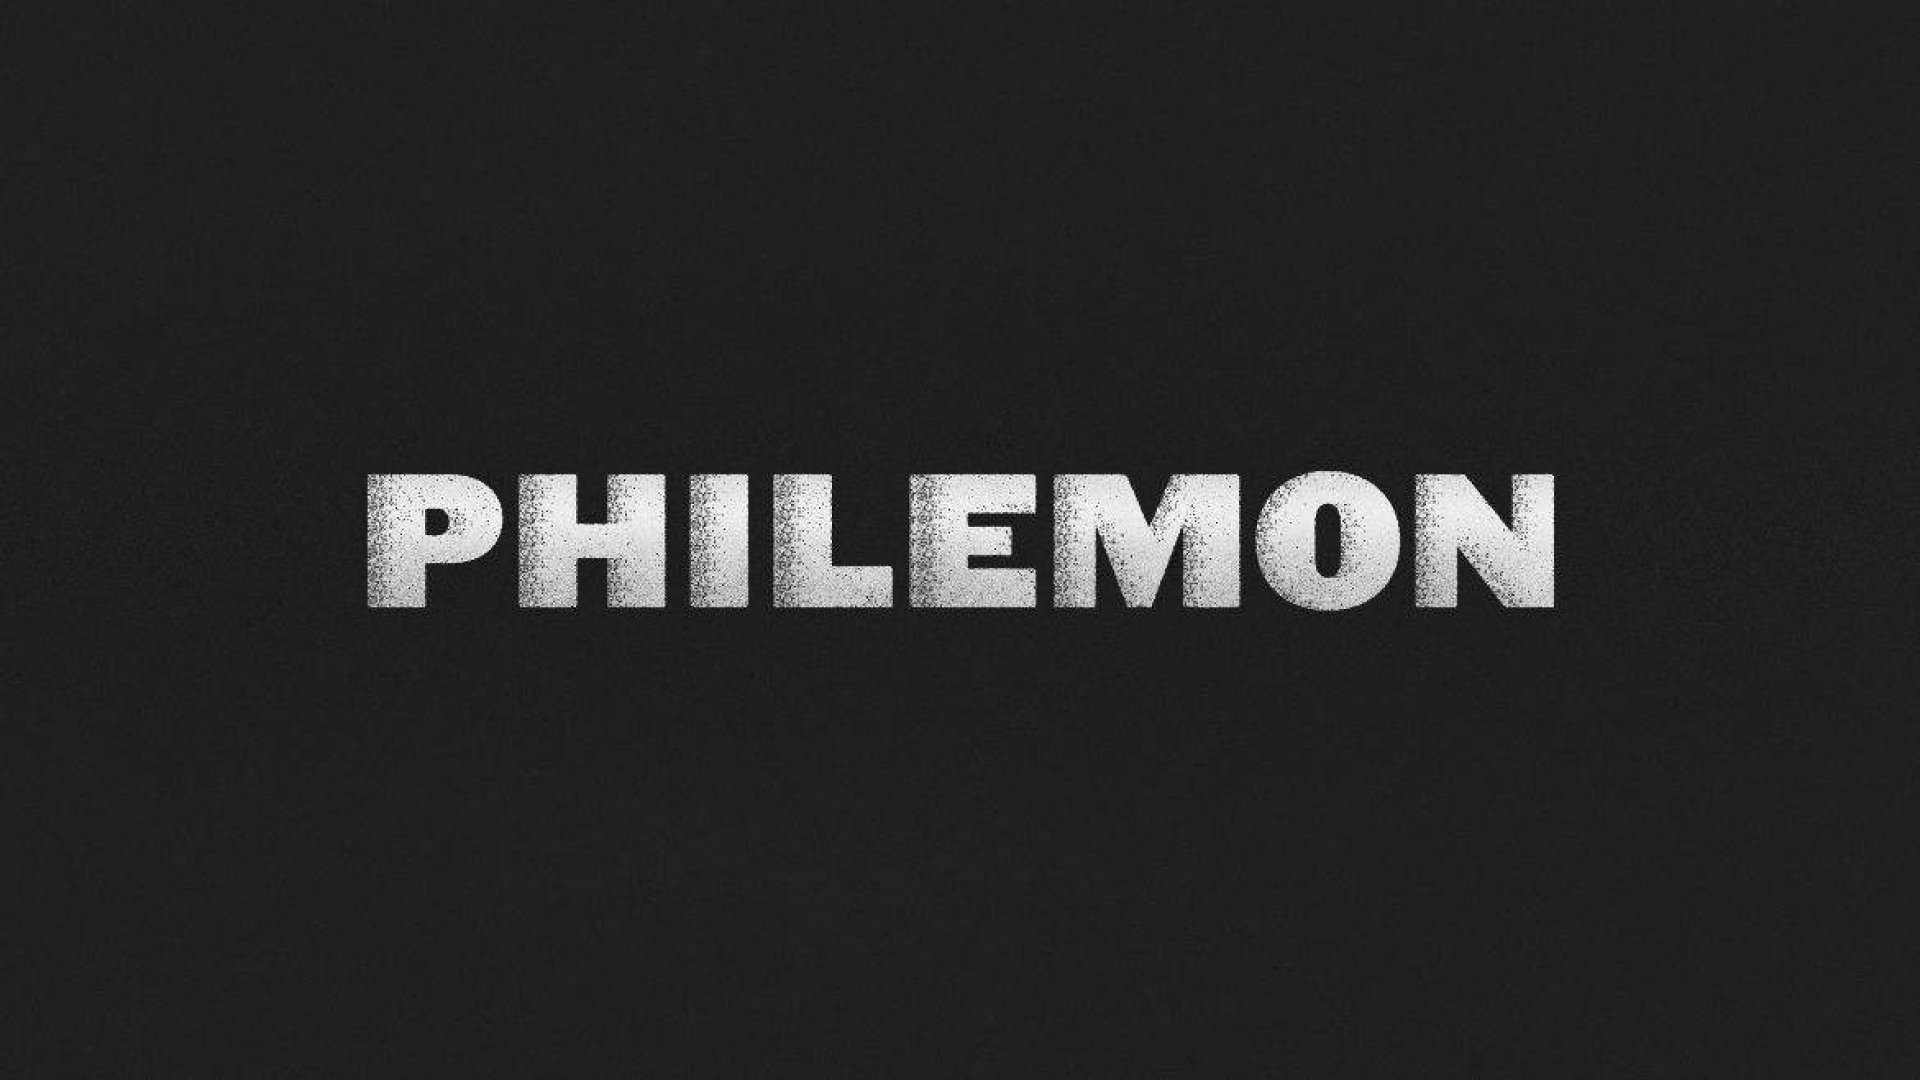 Teaching artwork for Philemon